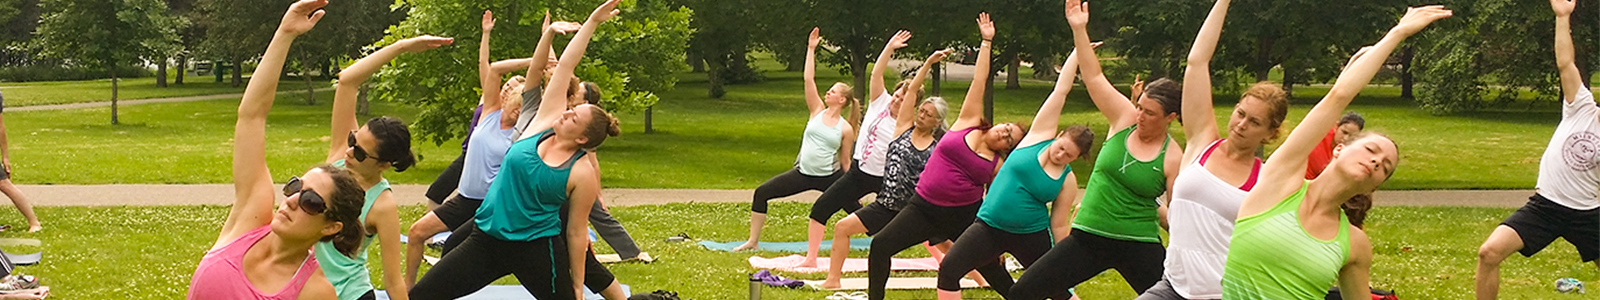 Saint Paul residents practicing yoga in a park